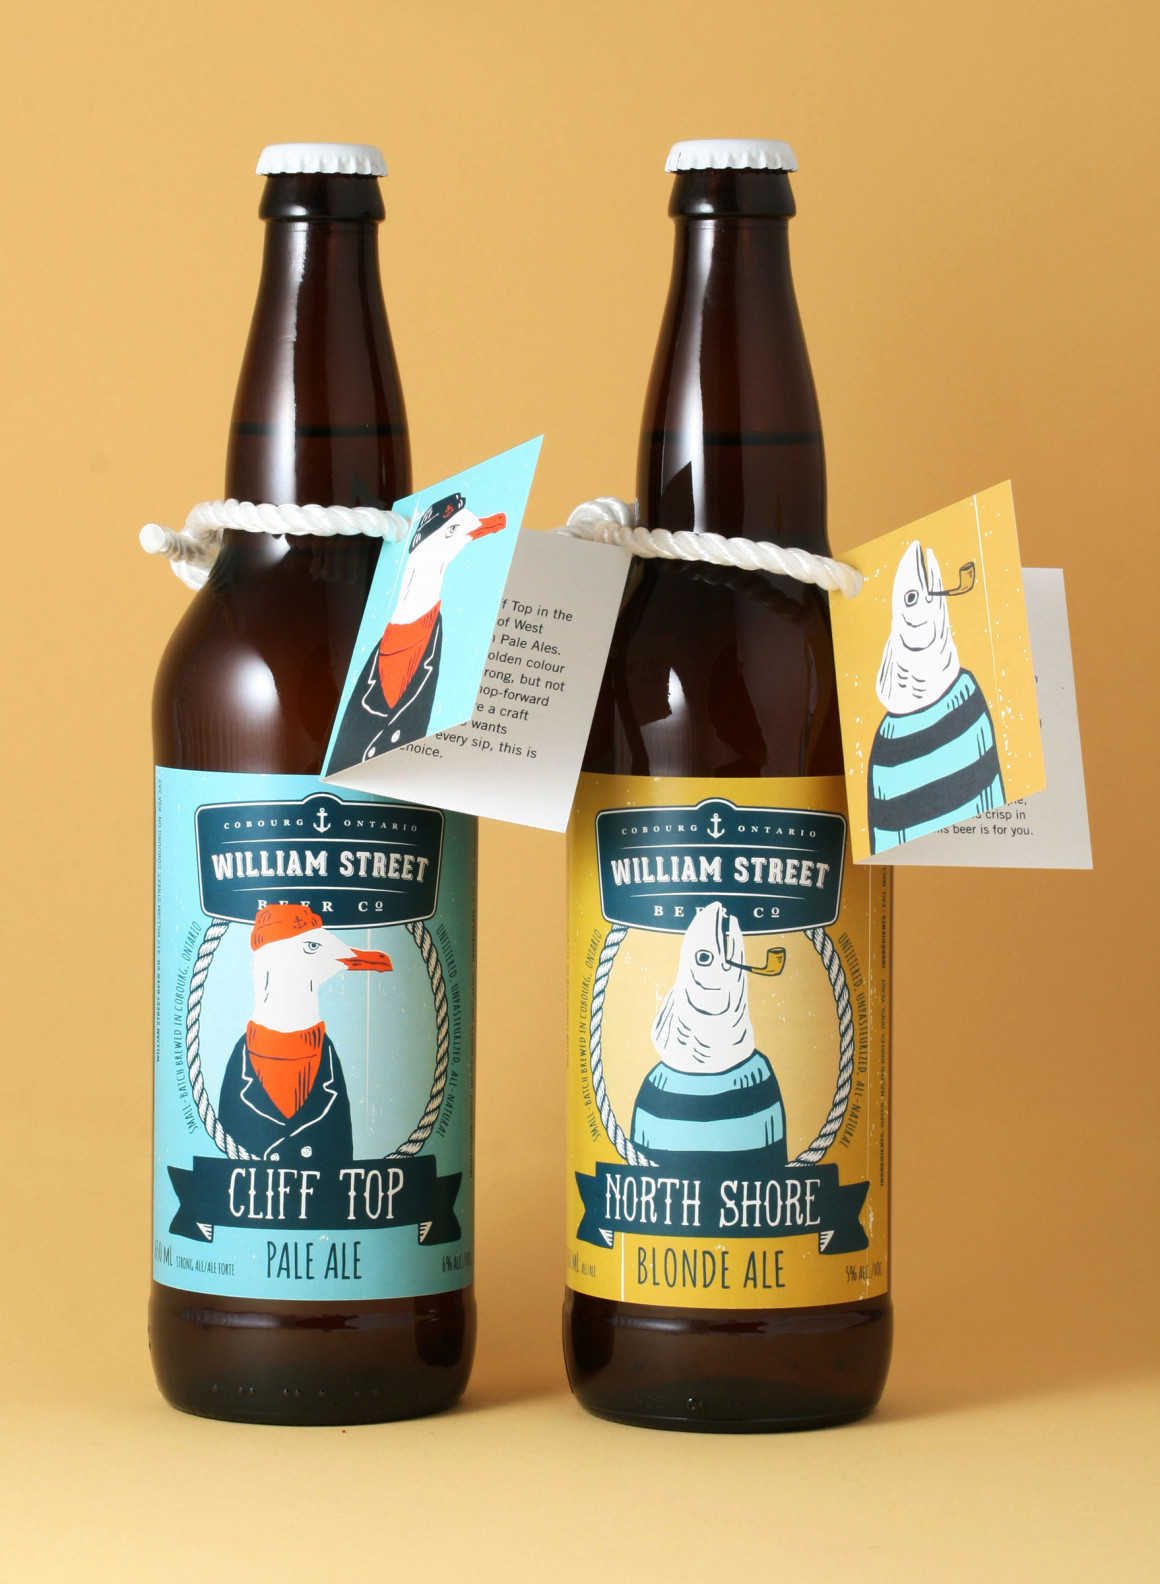 William Street Beer Co. label design – Luke Despatie & The Design Firm